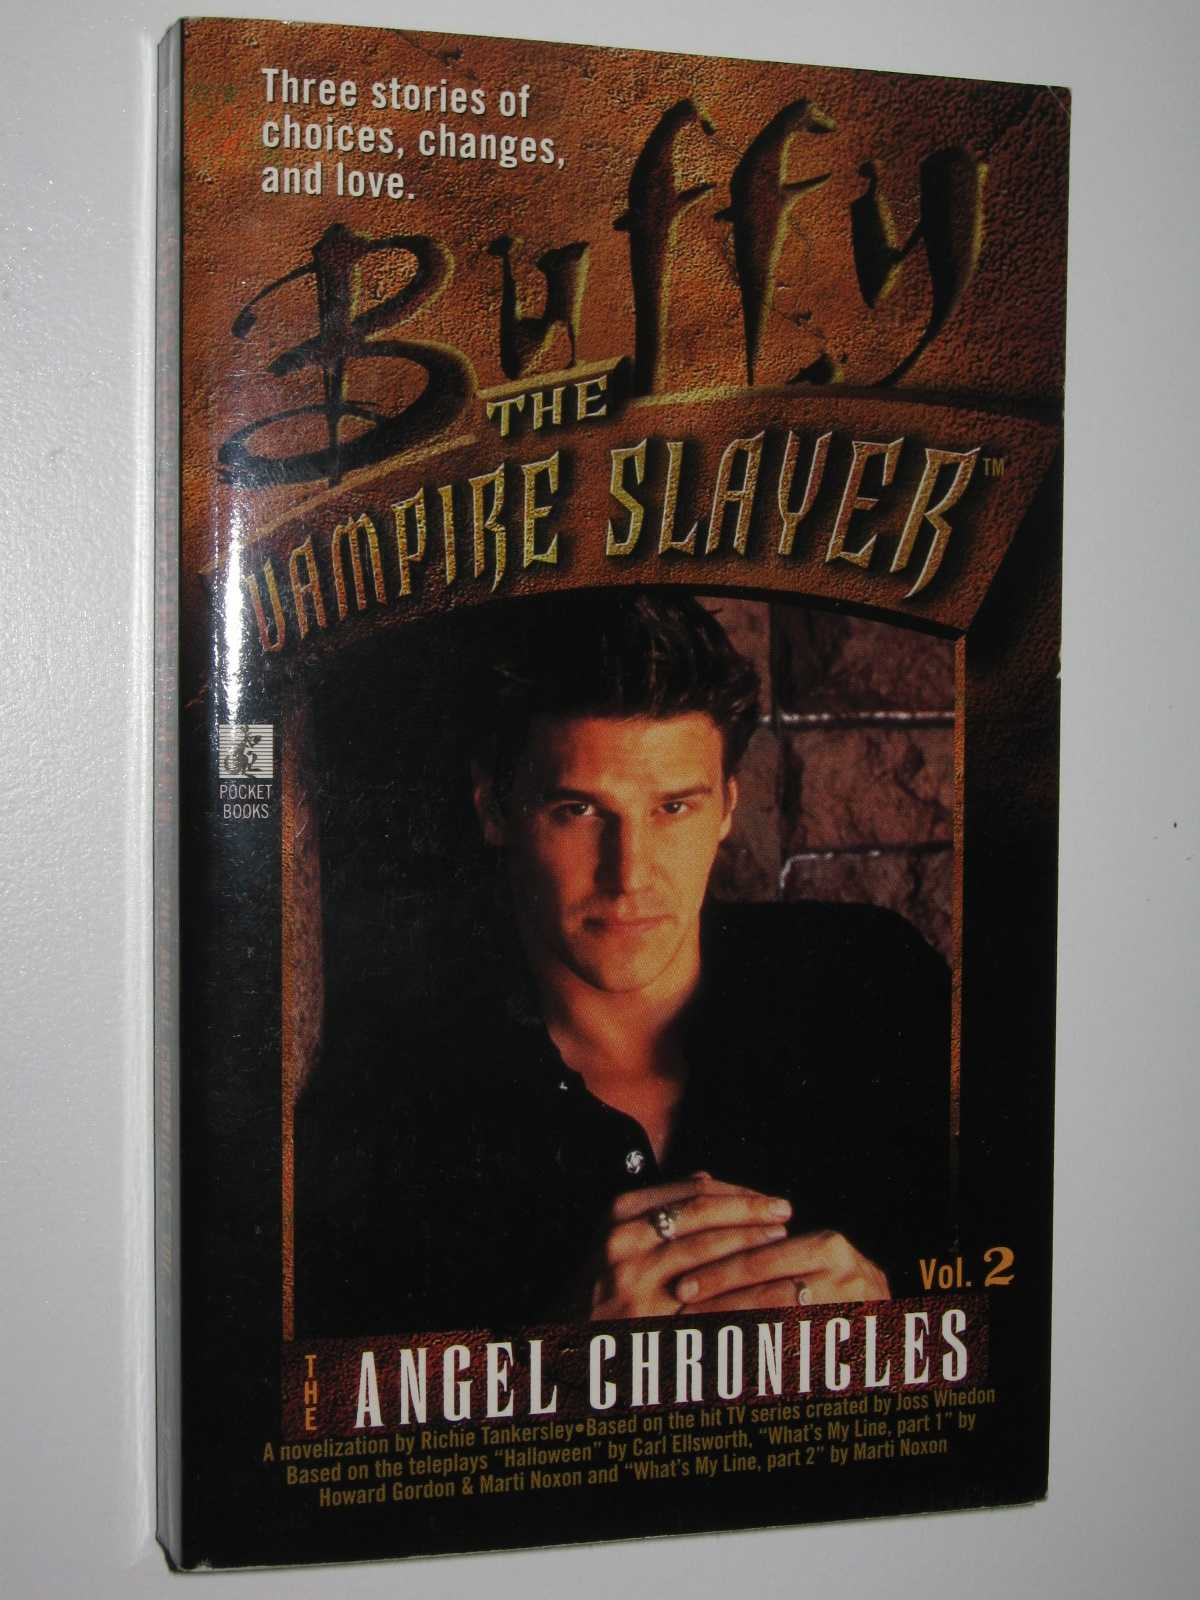 The Angel Chronicles #2 - Buffy the Vampire Slayer, Holder, Nancy